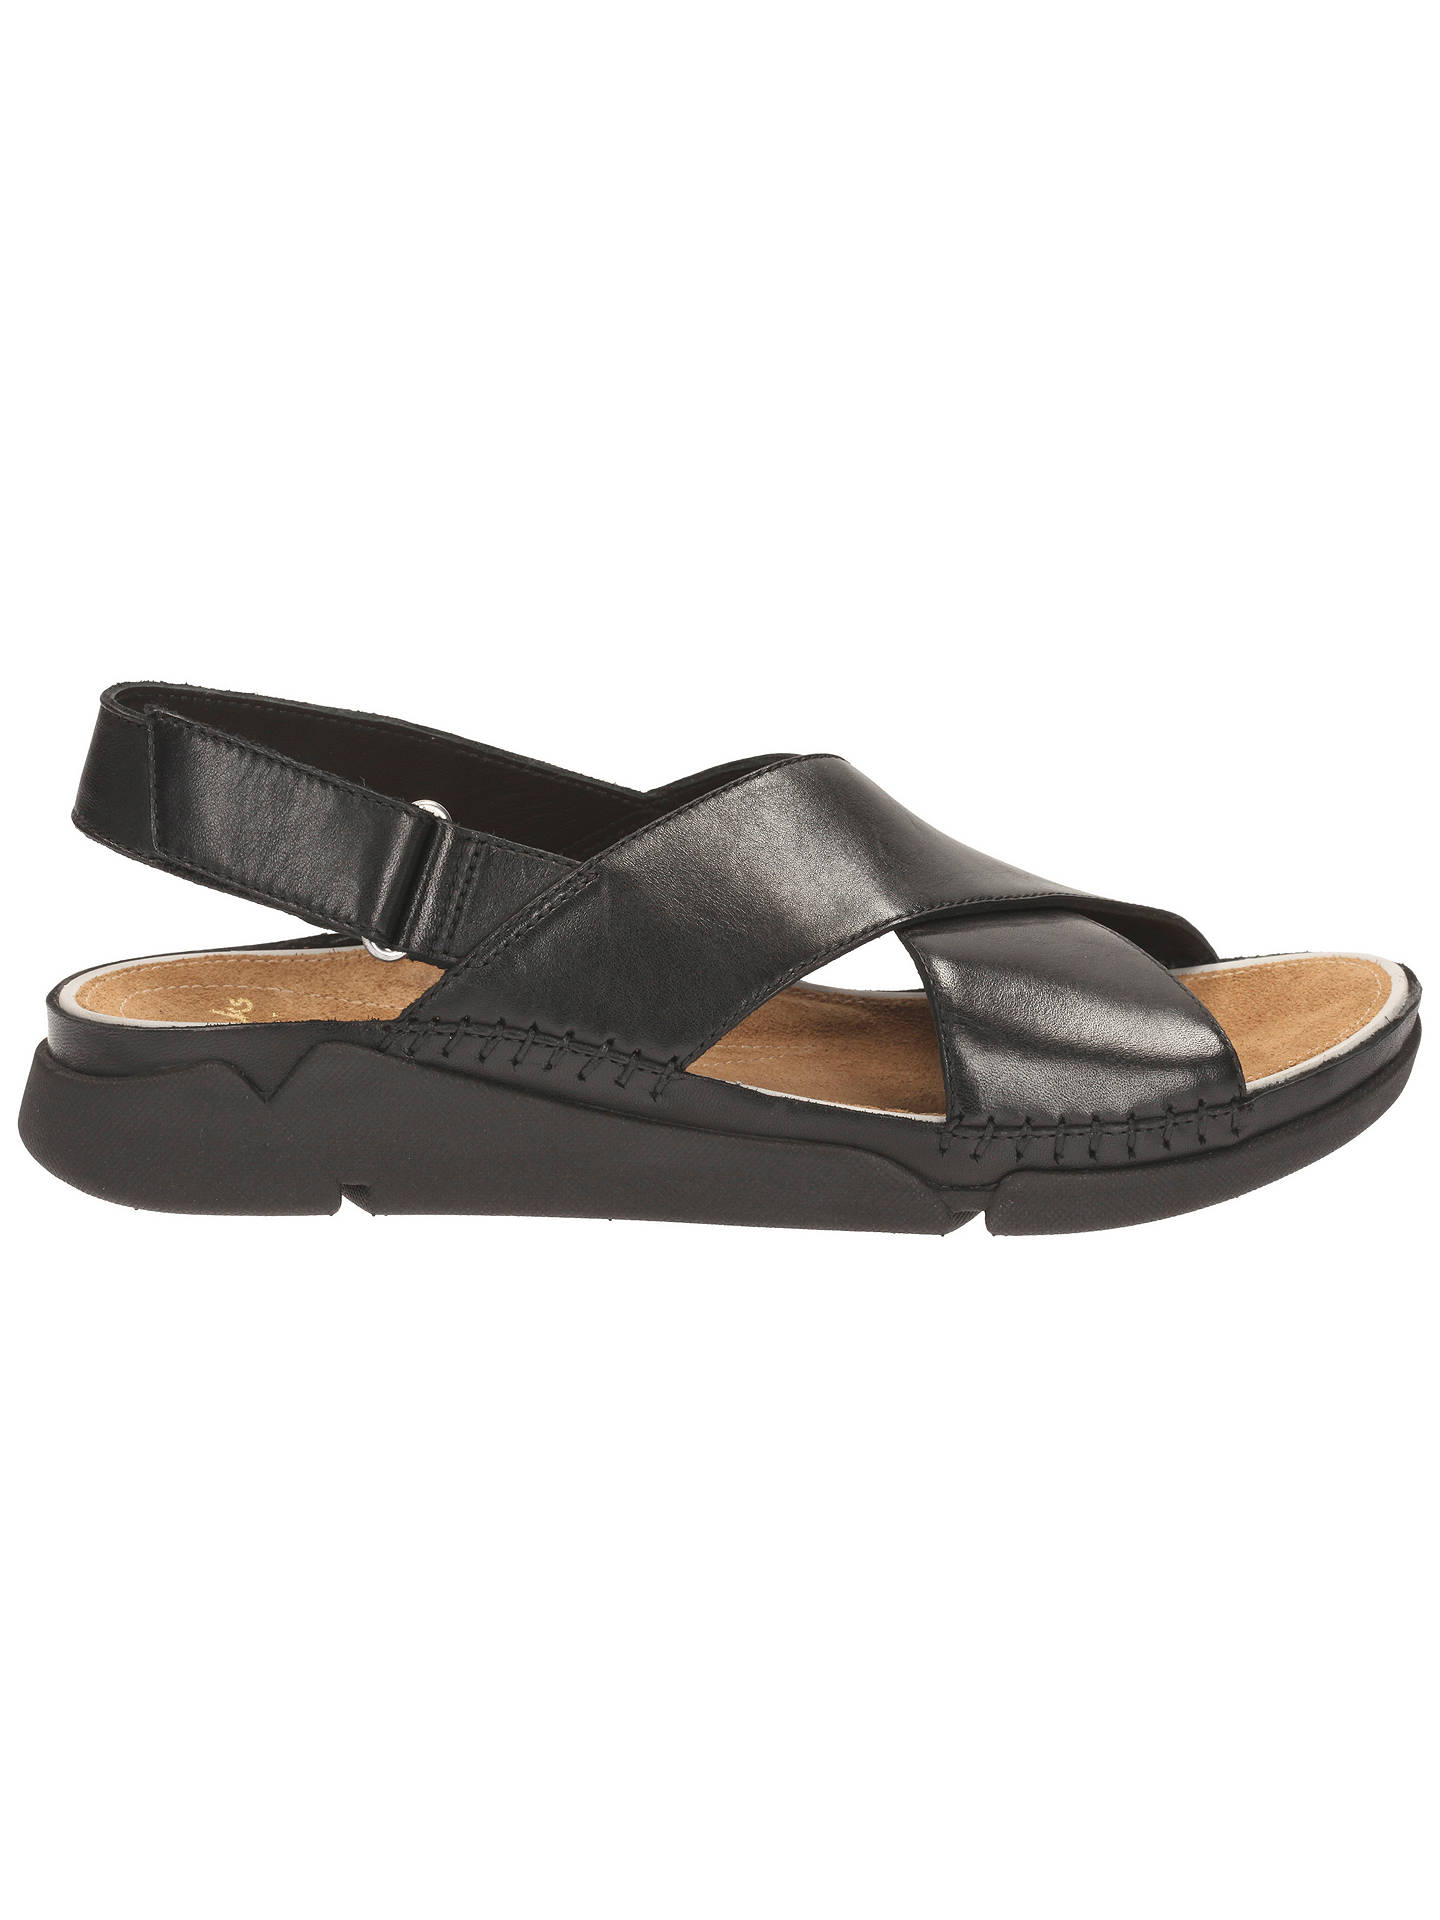 13a104b143cd Clarks Tri Alexia Leather Sandals at John Lewis   Partners